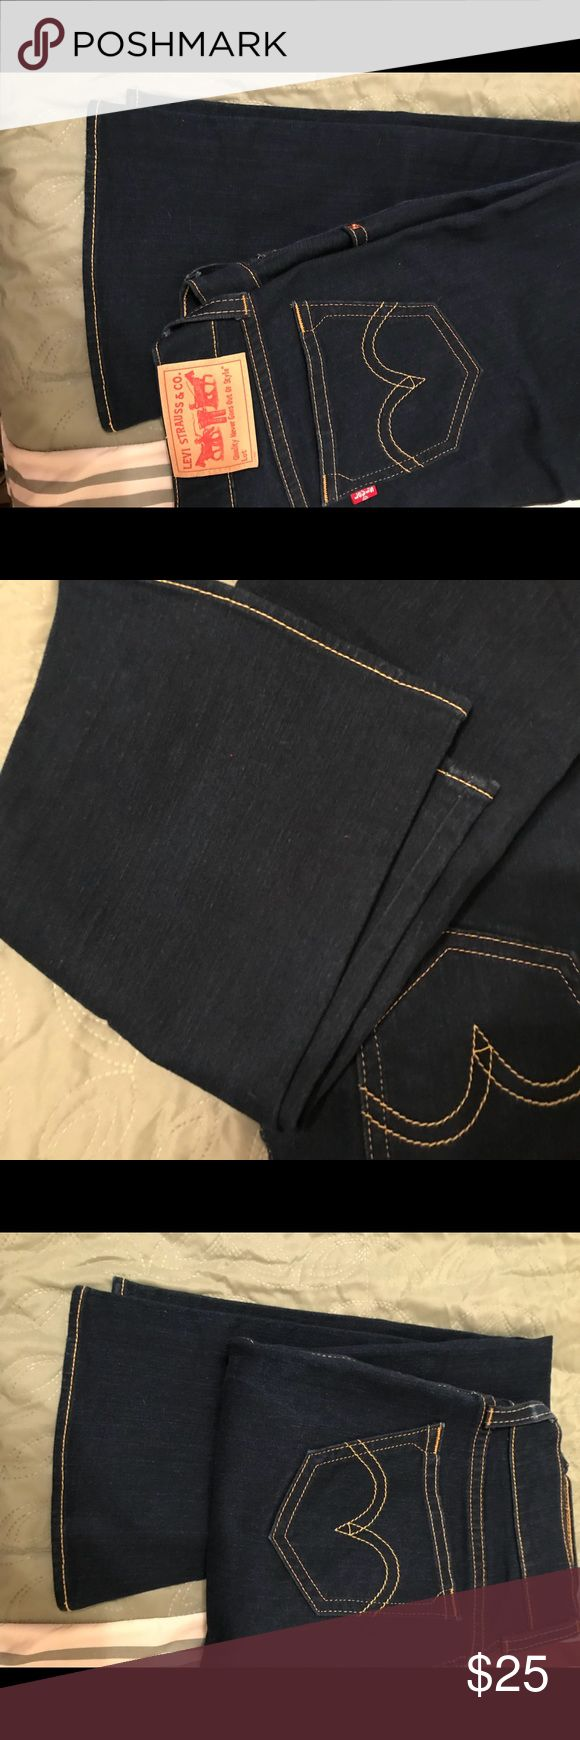 Levi's Womens Jeans size 12, bootcut Levi's women's jeans size 12, bootcut, dark blue in color, no fraying, too big for me. My loss is your gain! Levi's Jeans Boot Cut